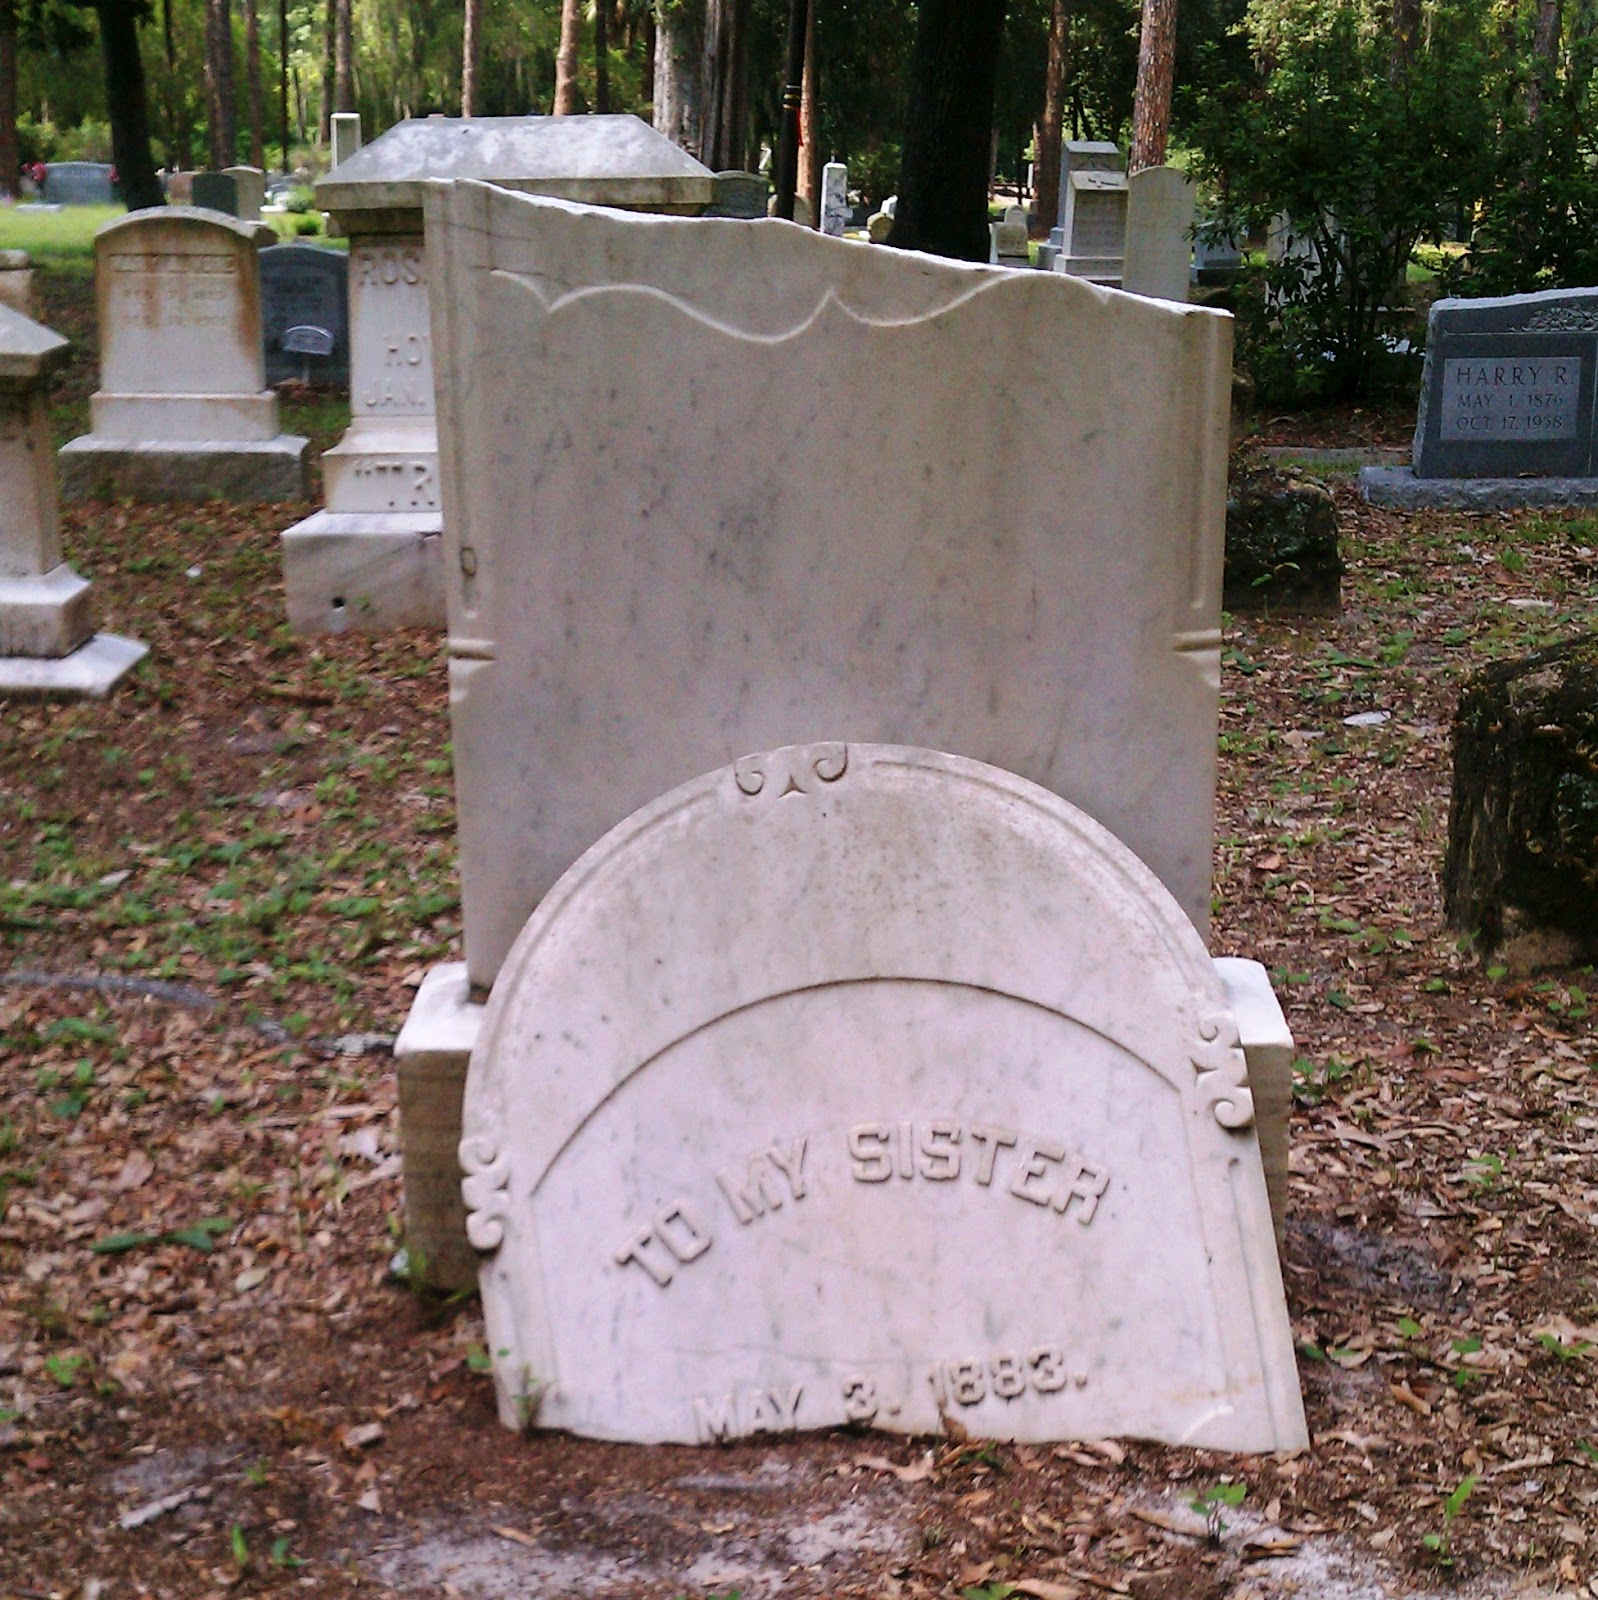 CRPT Spotlight: The Don'ts & Do's of Cleaning Headstones